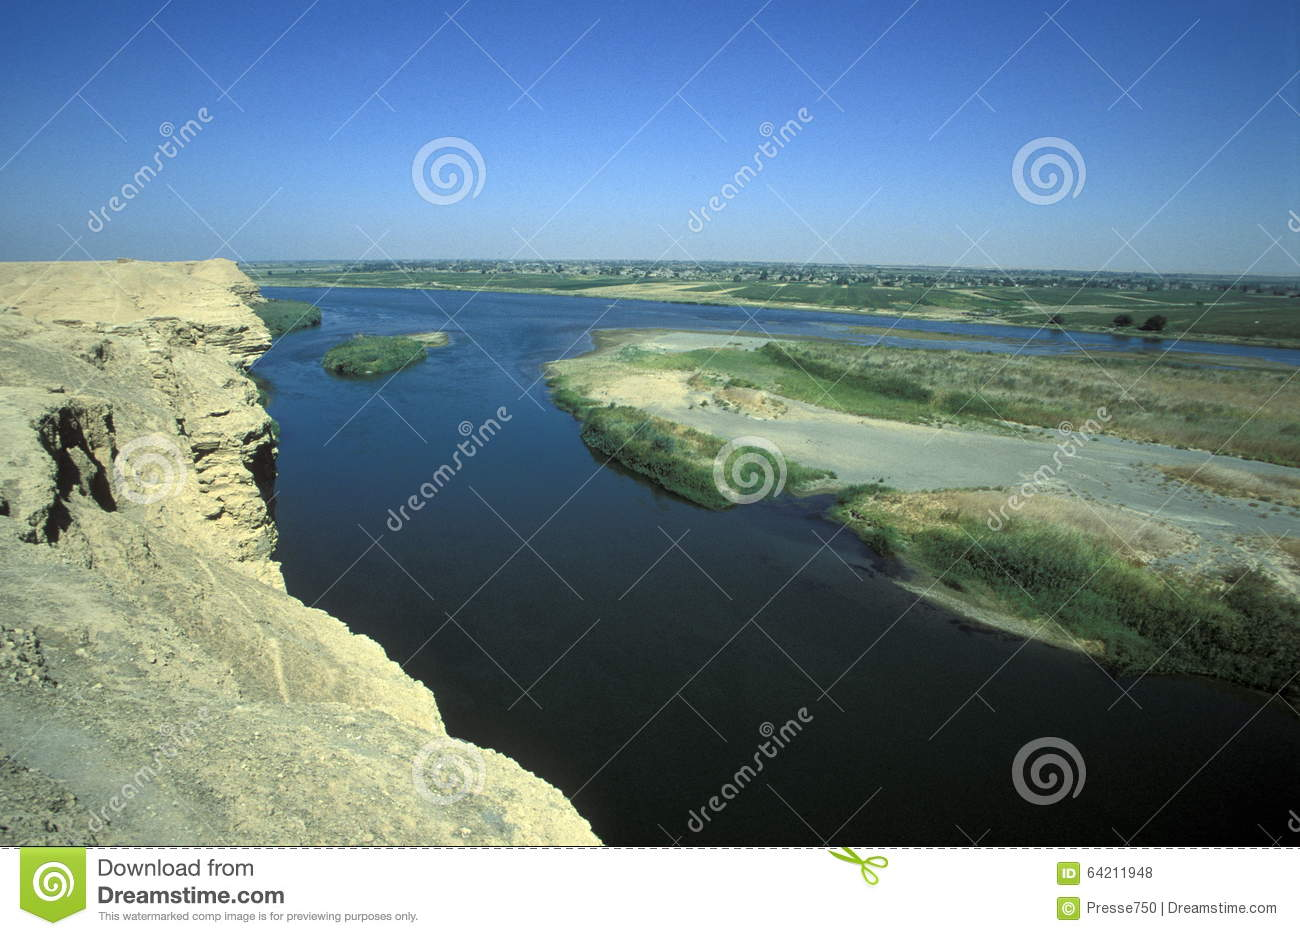 middle eastern singles in middle river One key region of central asia is northern kazakhstan, whose climate is relatively wet (compared with most of the middle east), giving rise to vast plains of wet grassland indeed, northern kazakhstan forms part of the vast eurasian steppe, whose endless grassland set the region on a unique historical path (see history of the steppe.